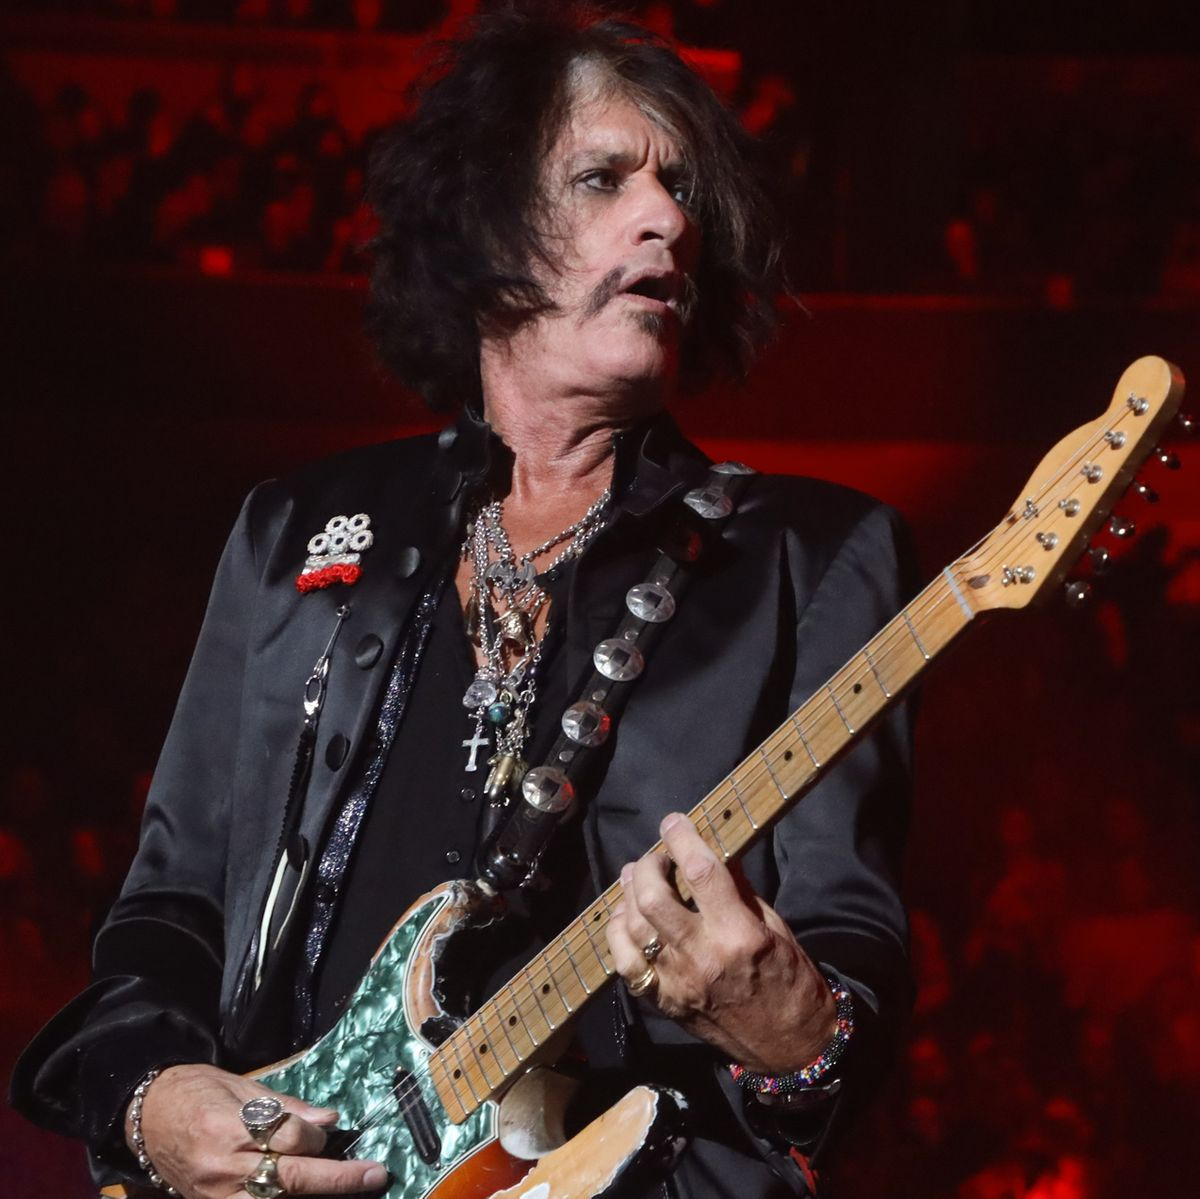 Aerosmith S Joe Perry Hospitalized After Billy Joel Collapse Joe perry was born in lawrence, mass., in 1950 and formed the seeds of aerosmith with bassist tom hamilton in the late '60s. joe perry hospitalized after